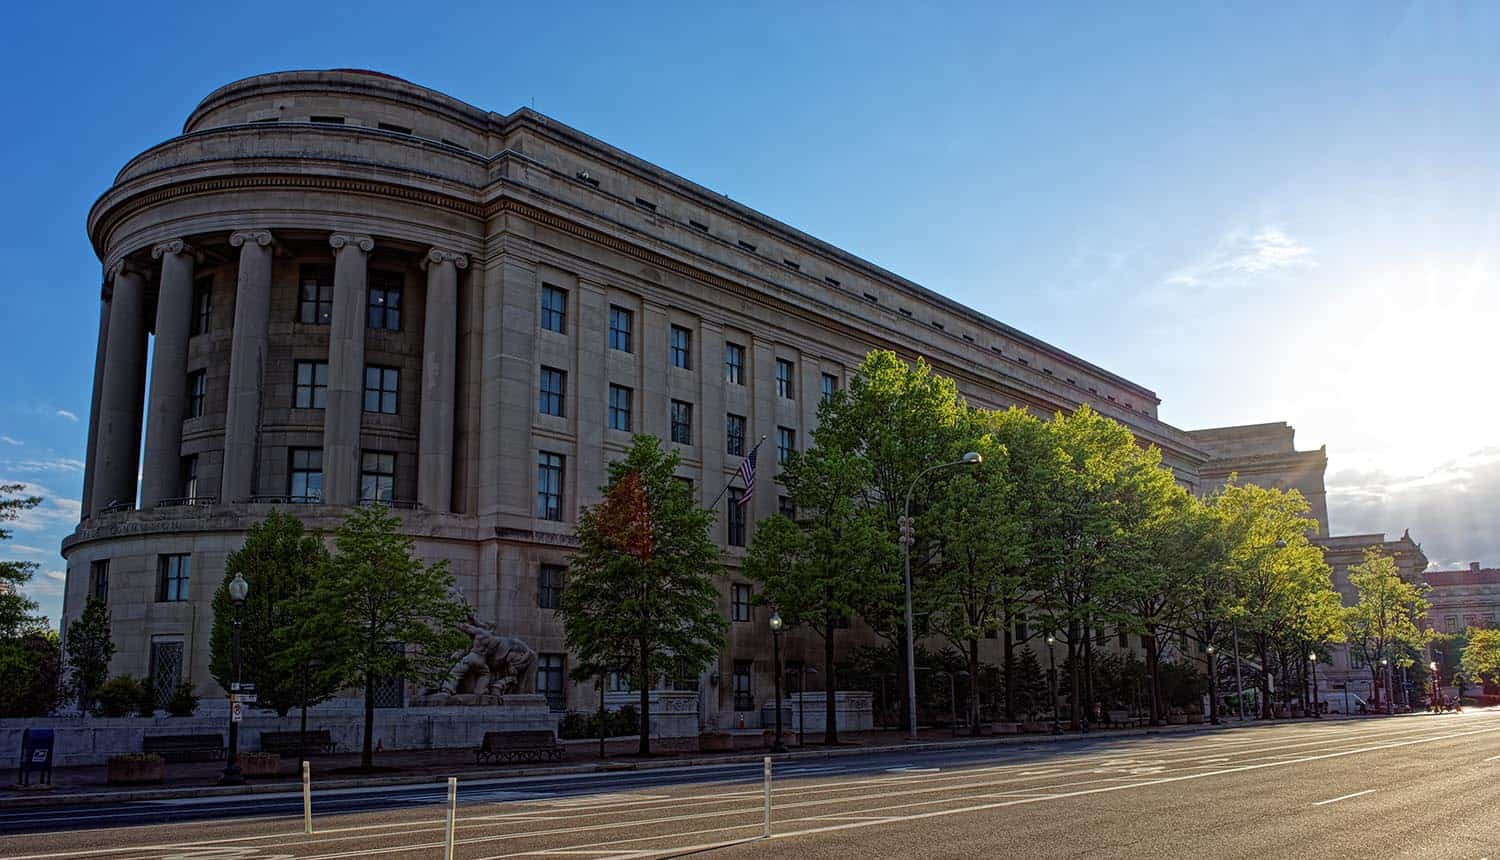 Exterior photo of FTC building showing how the FTC Facebook investigation might hold Mark Zuckerberg personally accountable for privacy issues